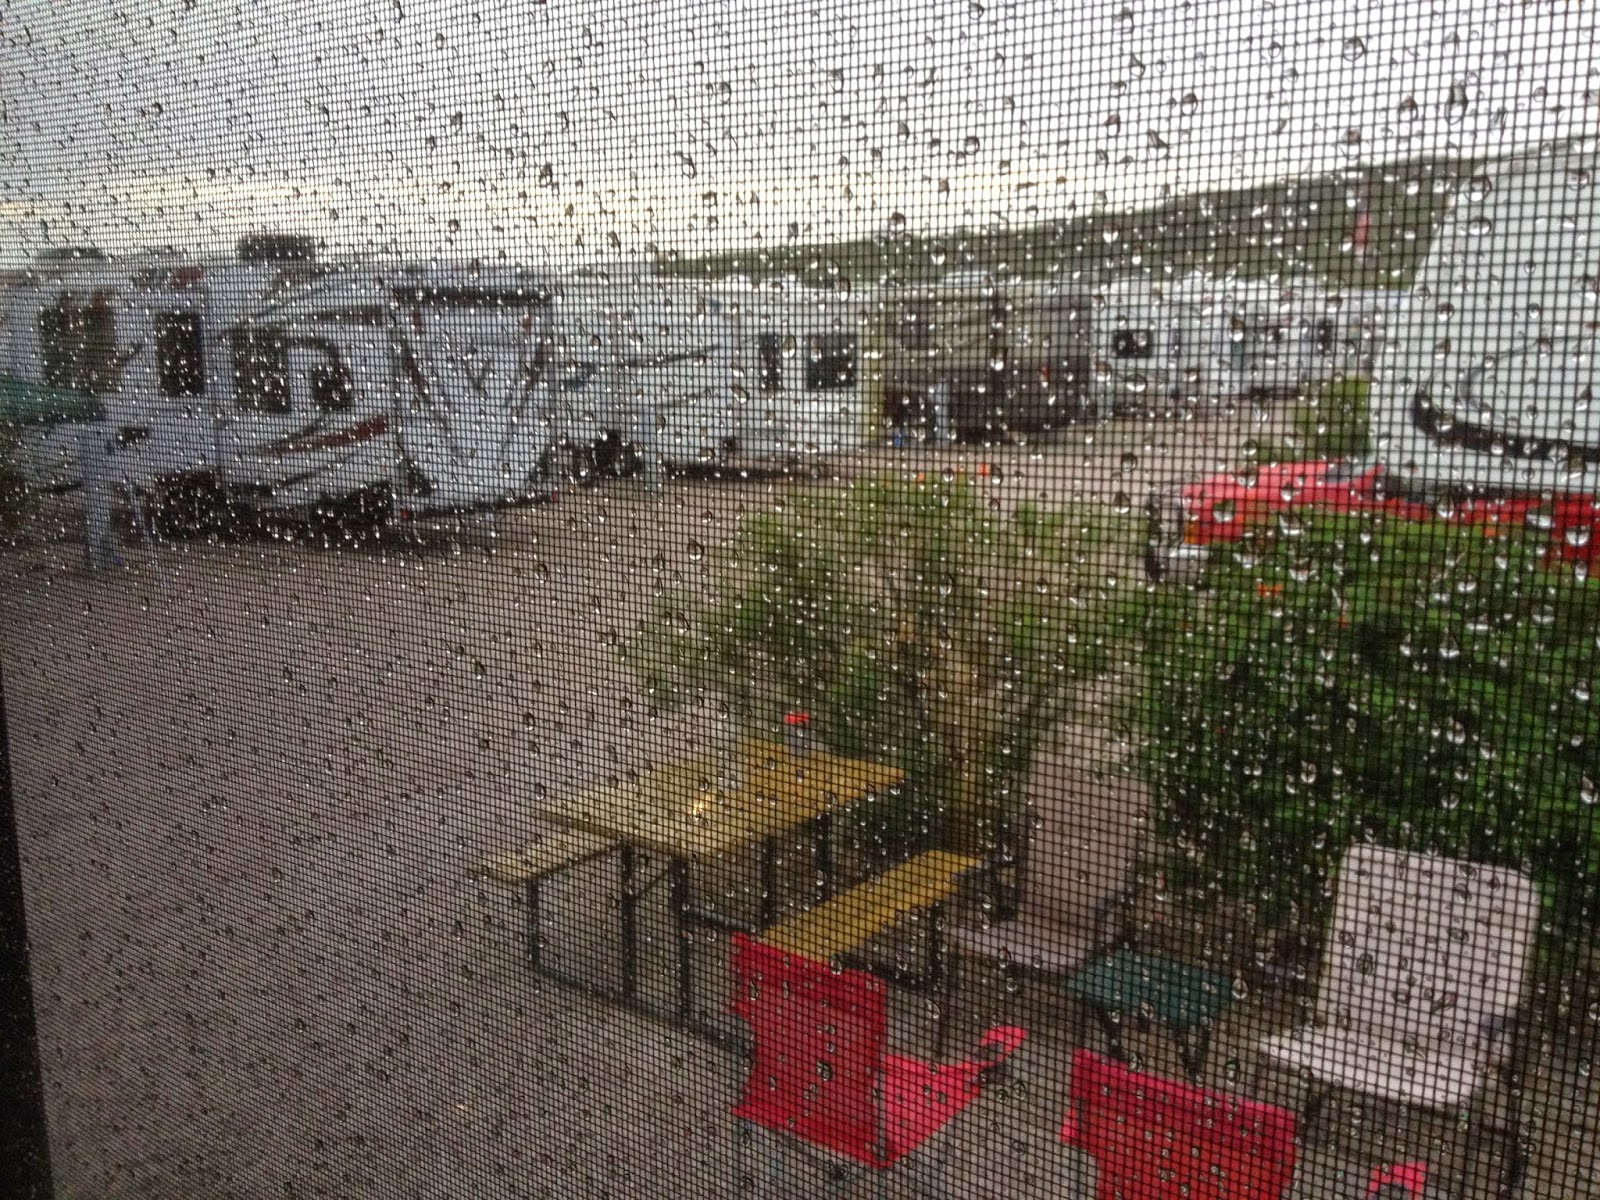 Rainy day in Ajo